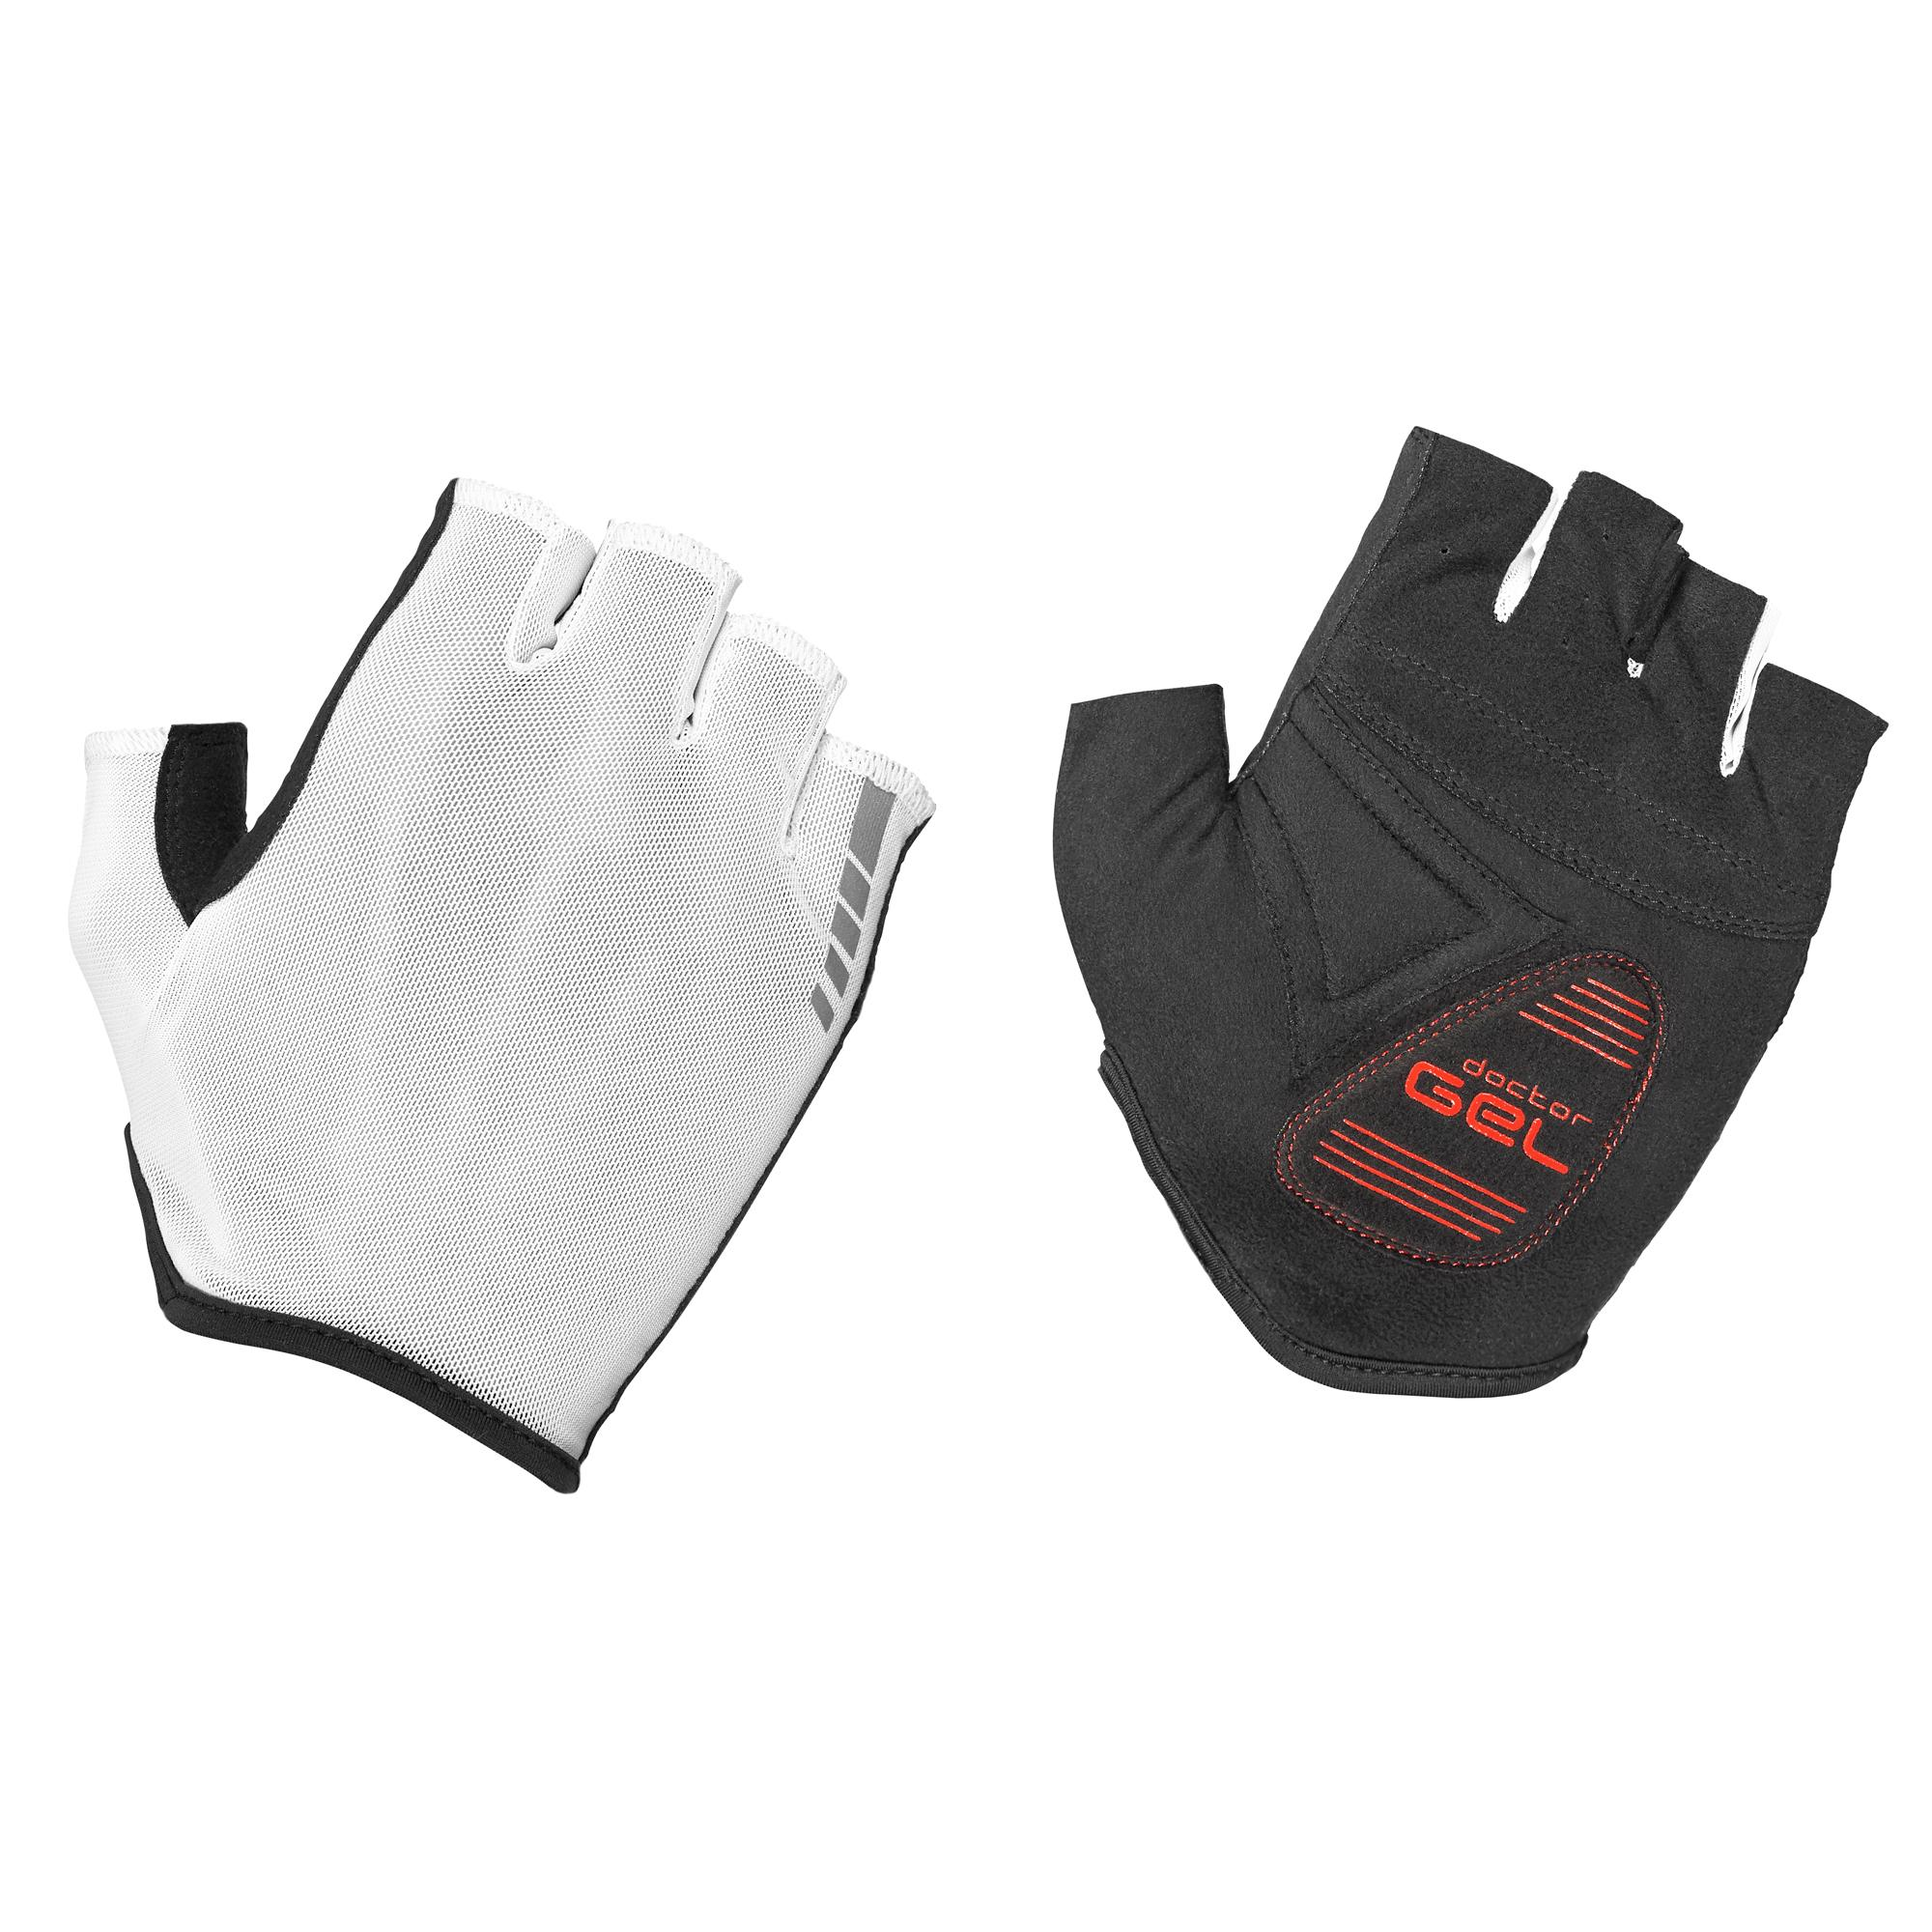 Afbeelding GripGrab Fietshandschoenen zomer Unisex Wit - Solara Lightweight Padded Tan Through Glove White